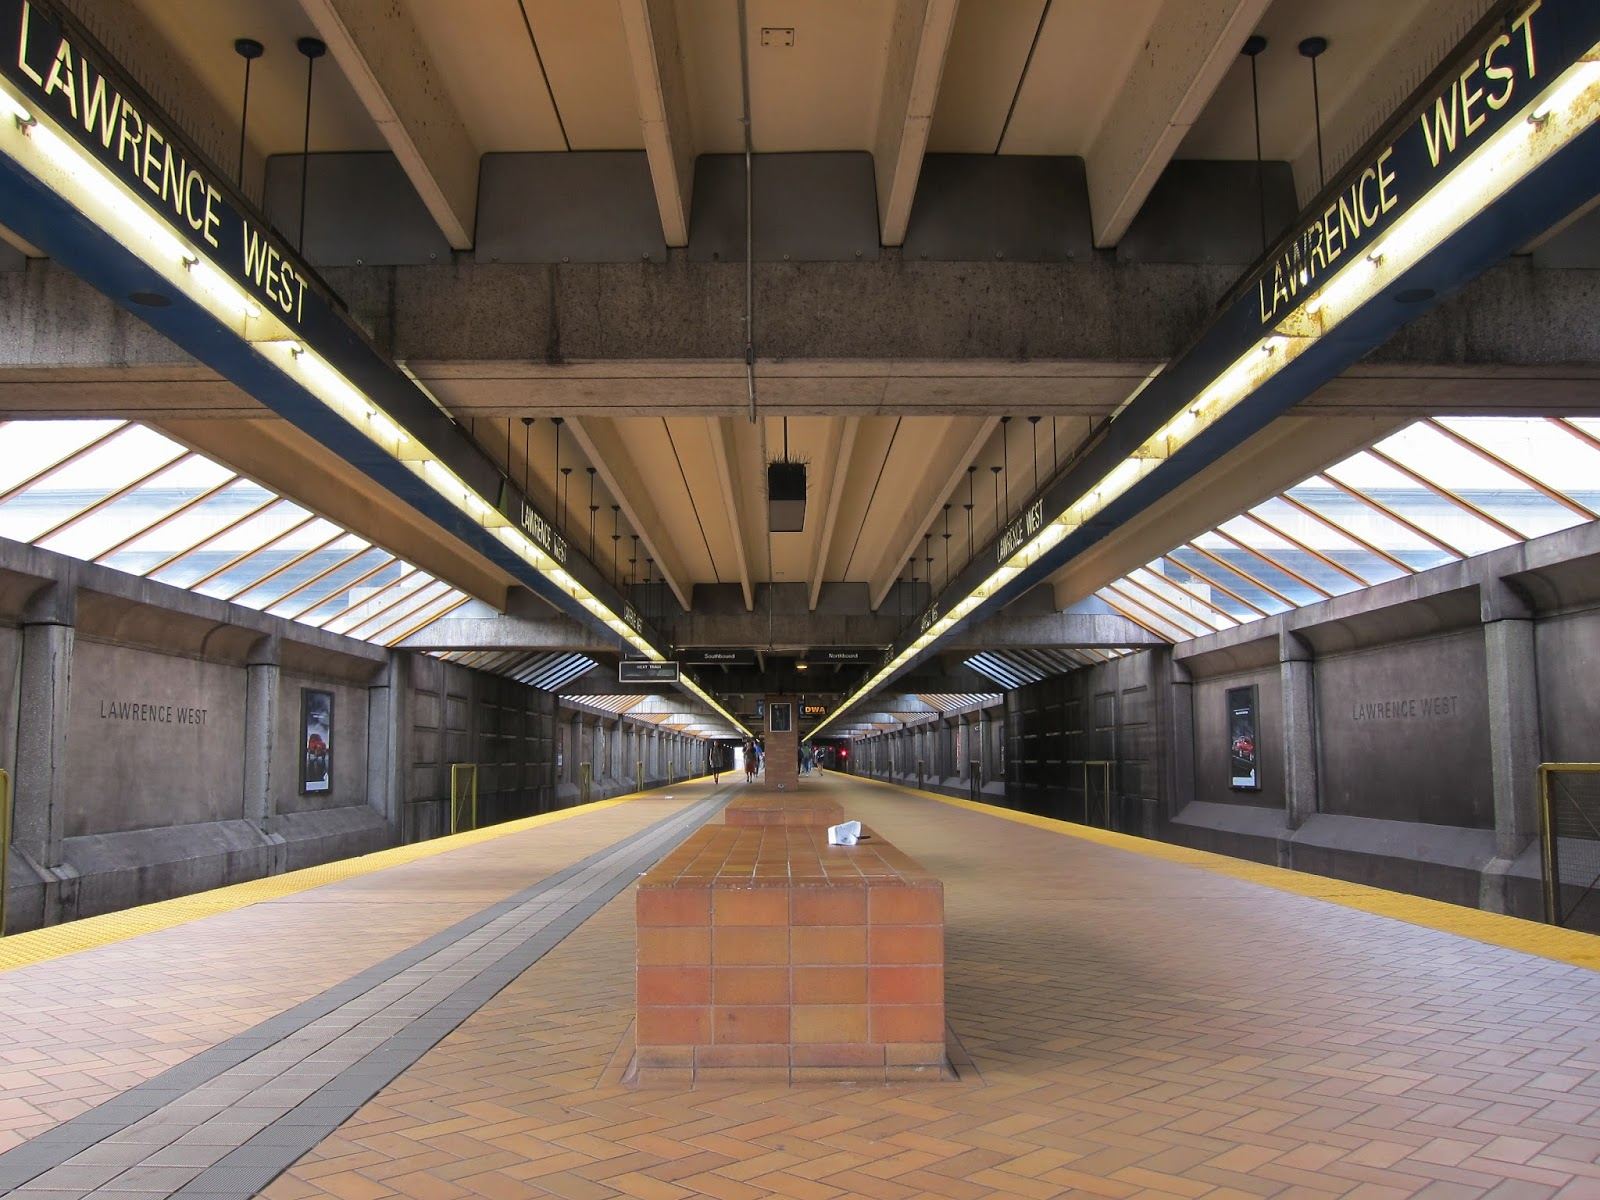 Lawrence West subway platform view